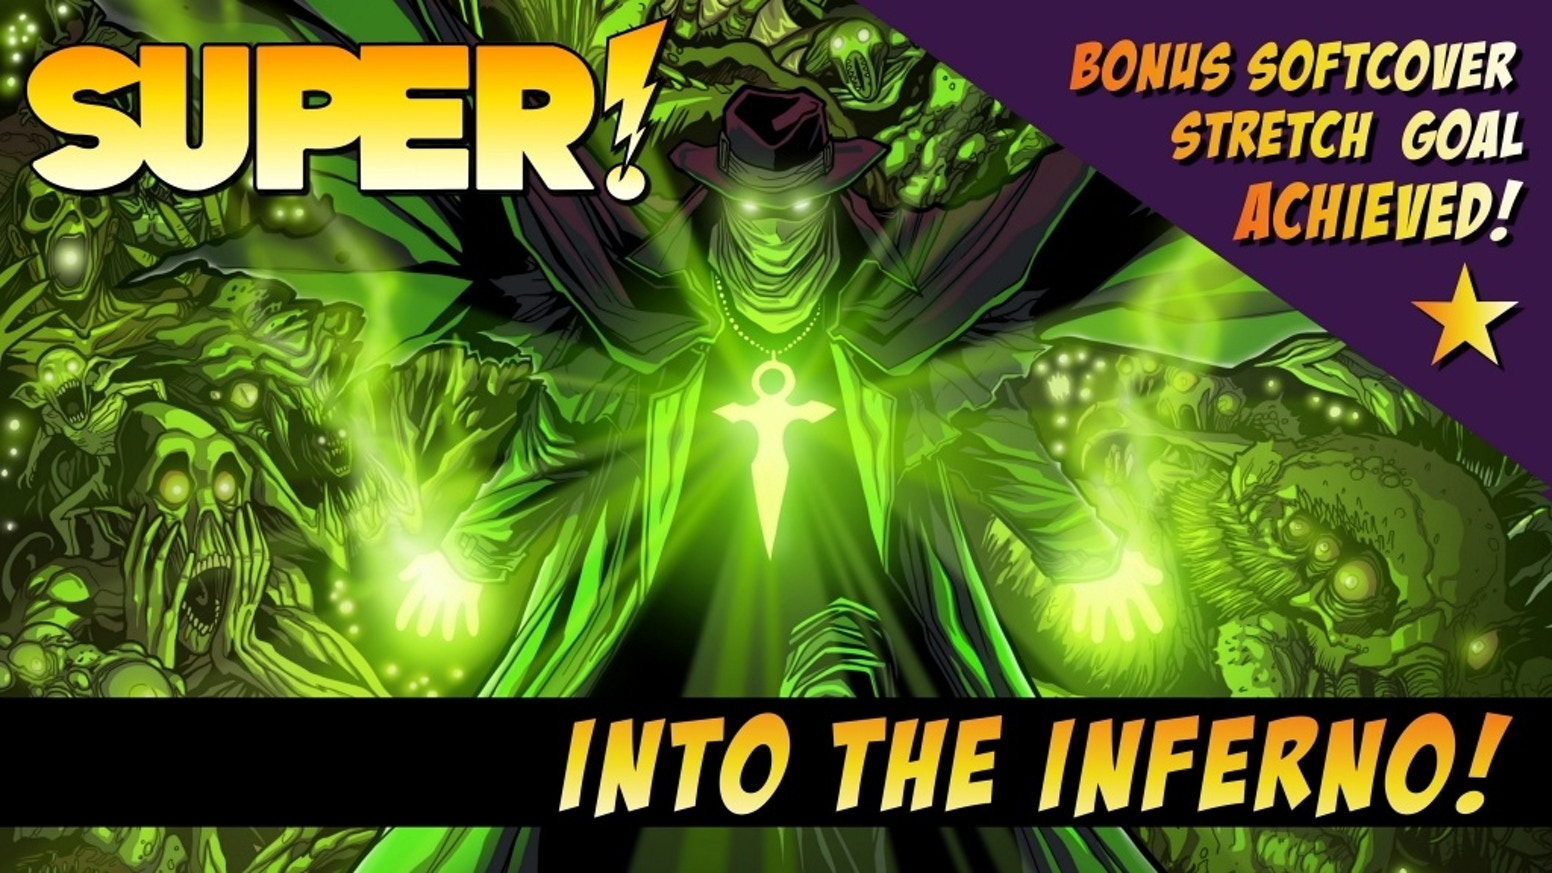 ... Into the Inferno! Unlikely Heroes Studios has completed Issue 6 of their critically-acclaimed superhero comic Super!